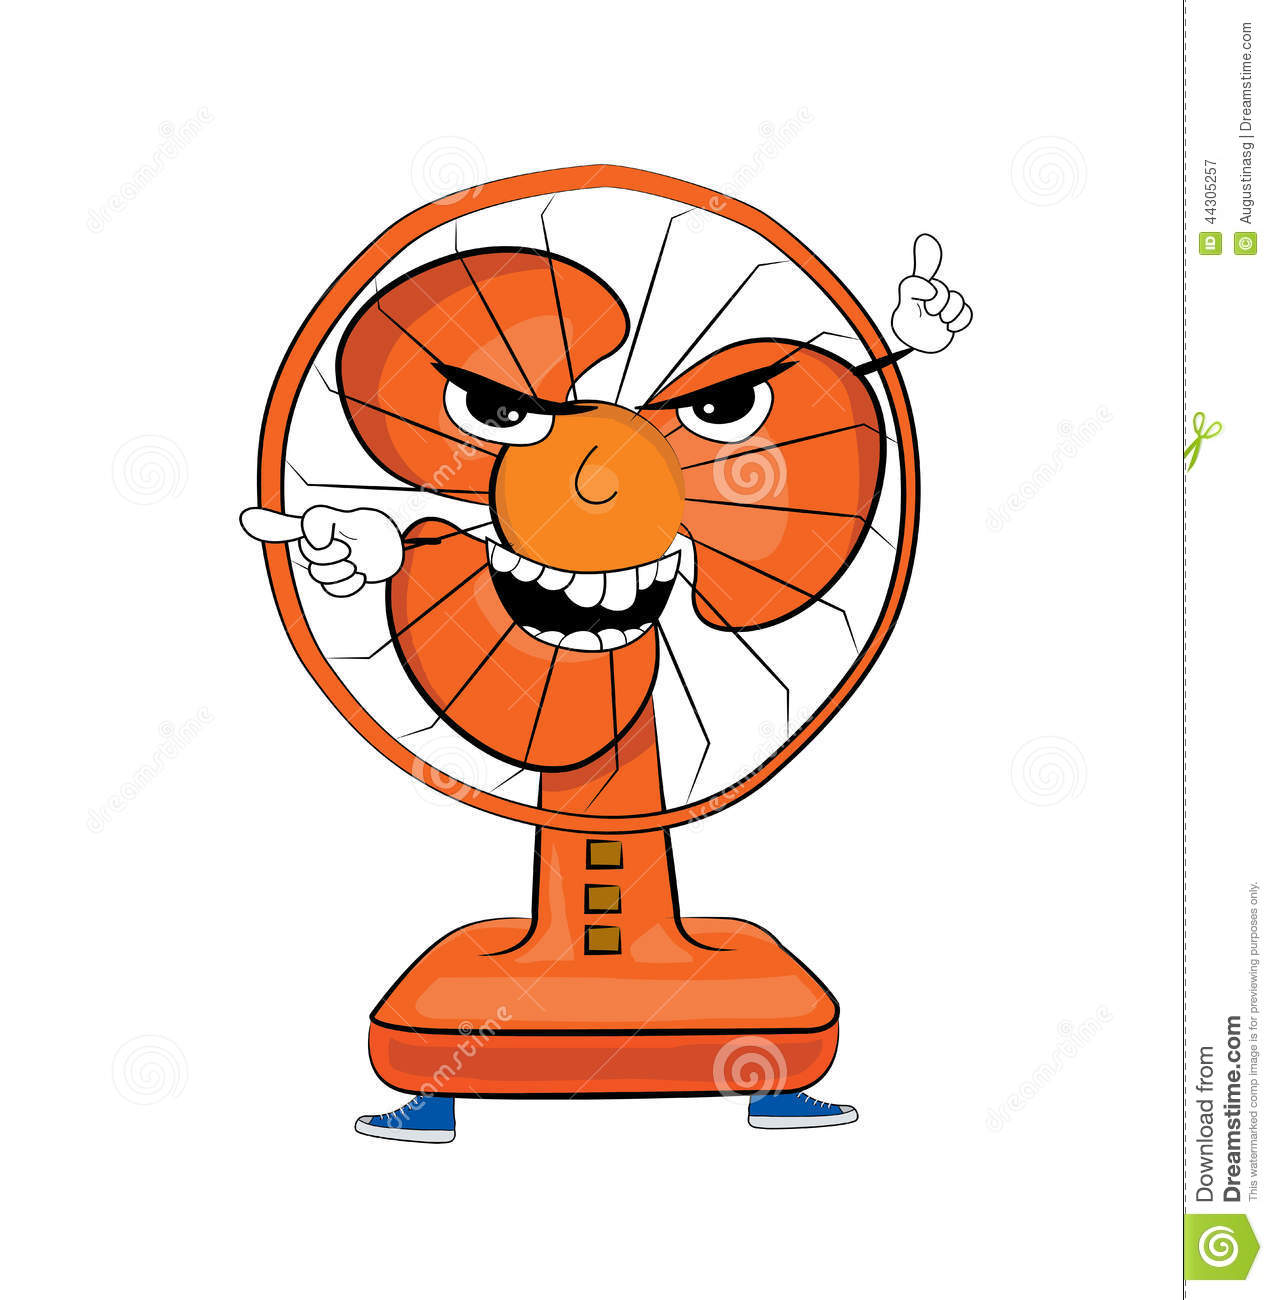 Angry table fan cartoon stock illustration. Image of ...